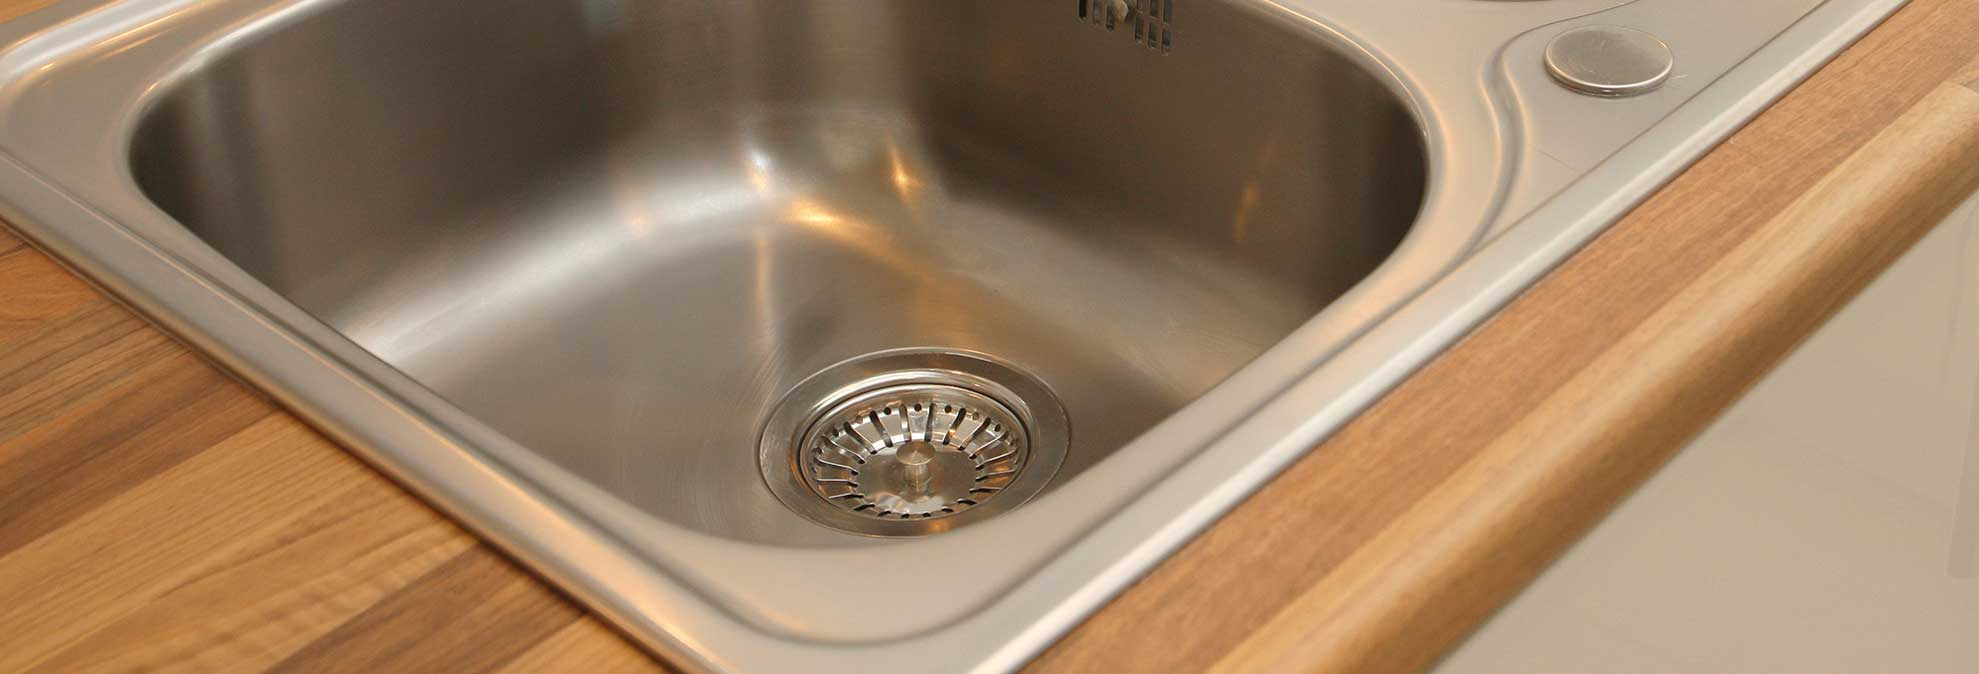 Best Sink Buying Guide Consumer Reports - Kitchen sink models